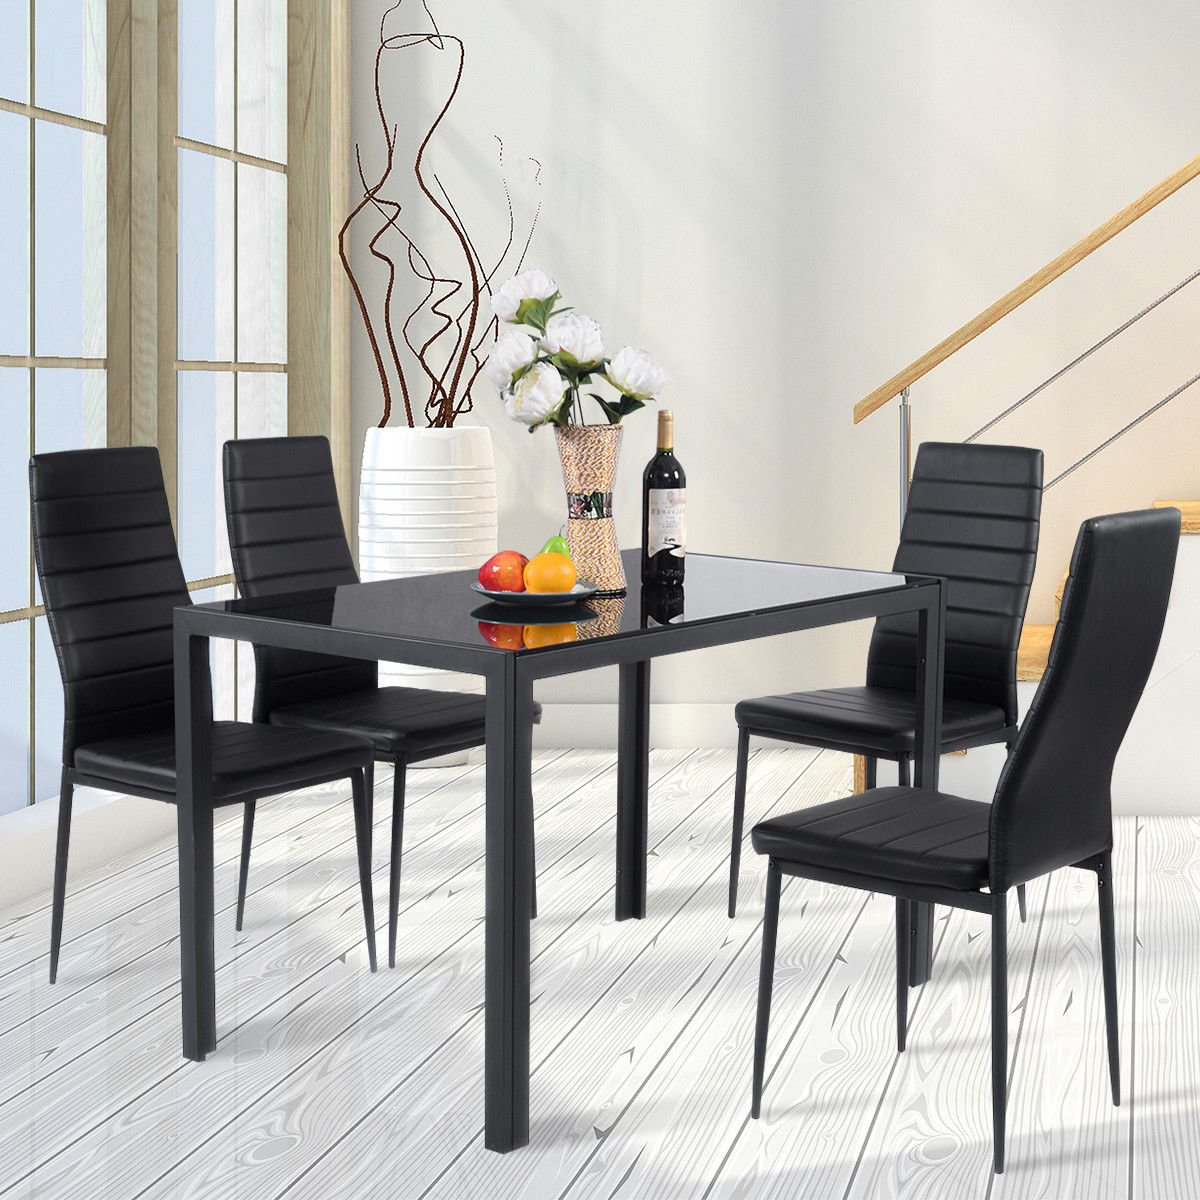 2018 Linette 5 Piece Dining Table Sets Regarding Edgeworth 5 Piece Dining Set (View 3 of 20)